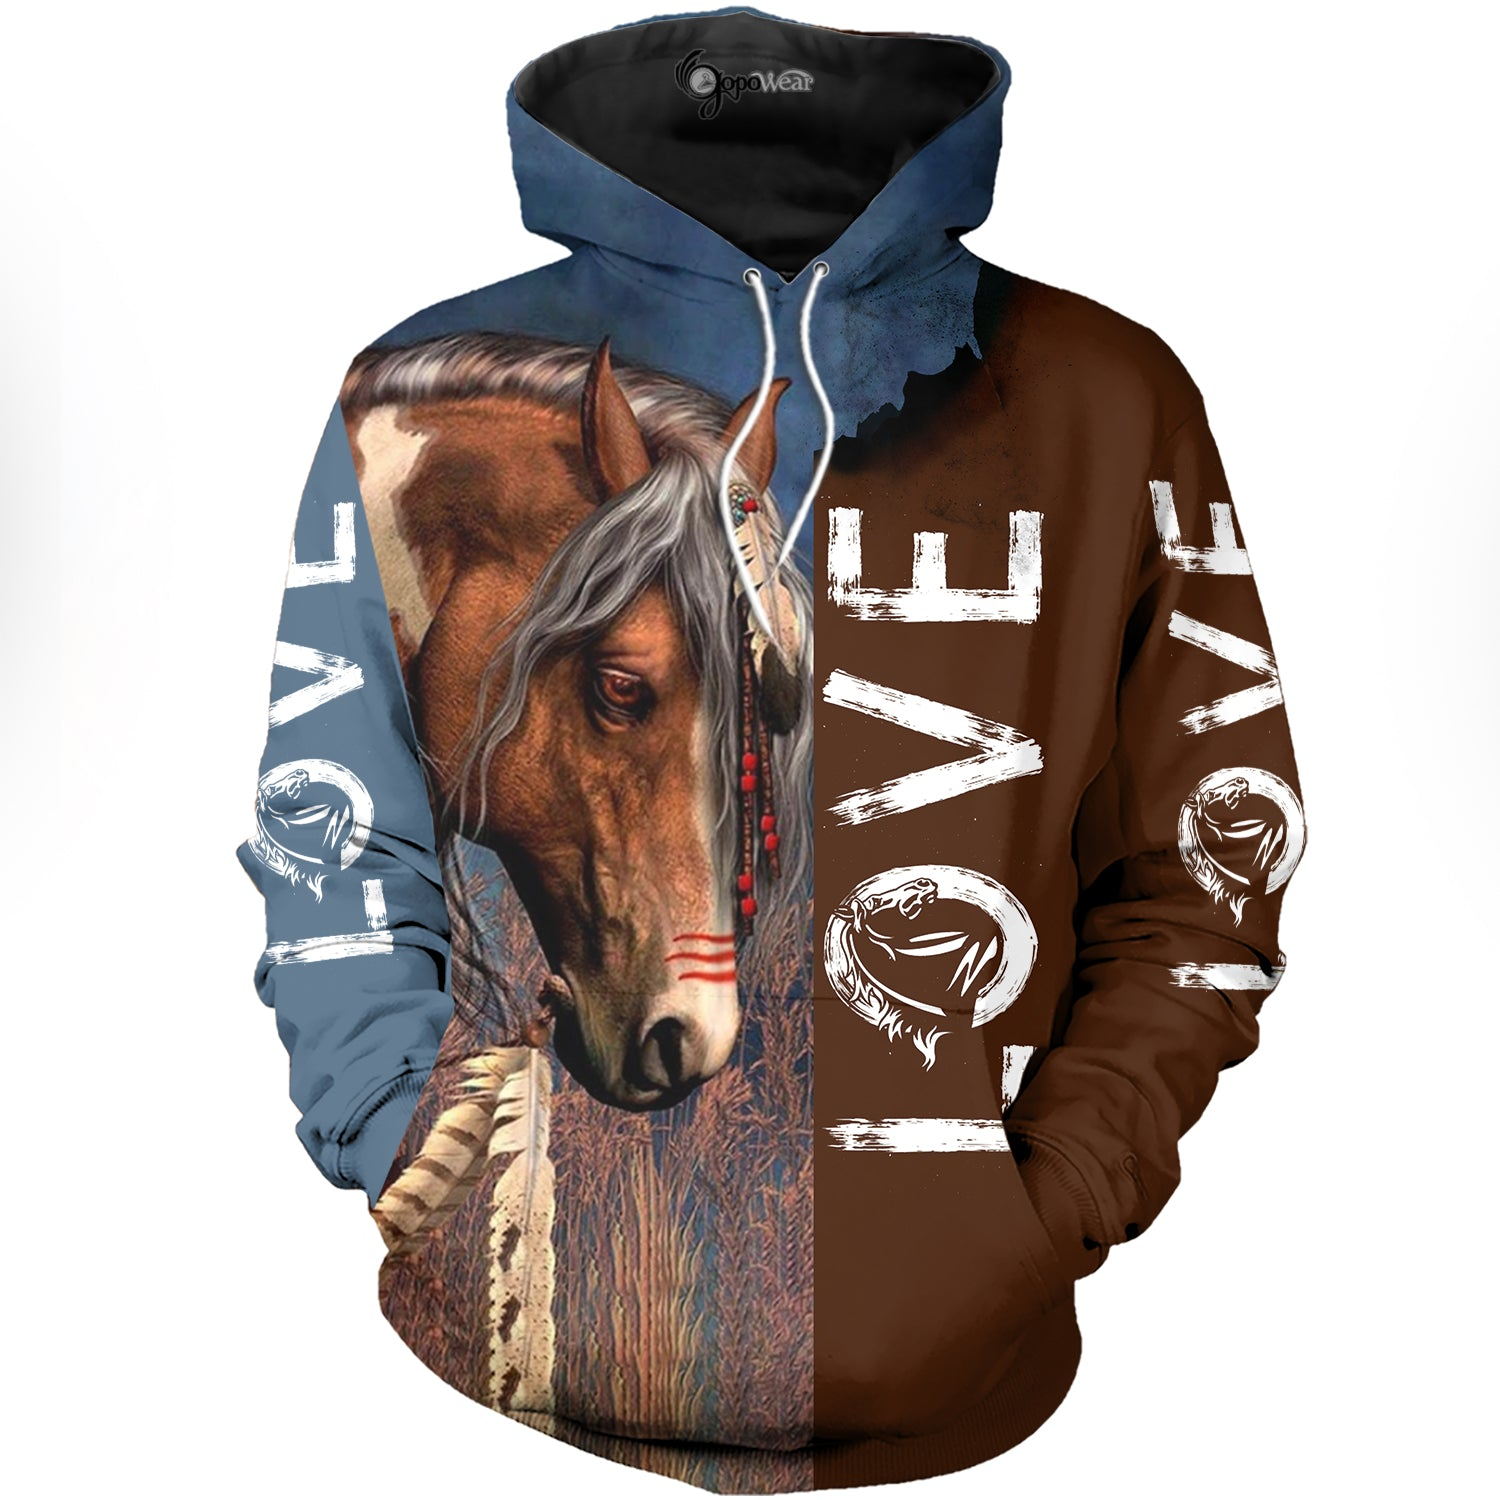 Gopowear Horse_Love Horse Shirt_ZTQ2208902_3D-All-Over-Printed-Shirts_3d_hoodie.jpg